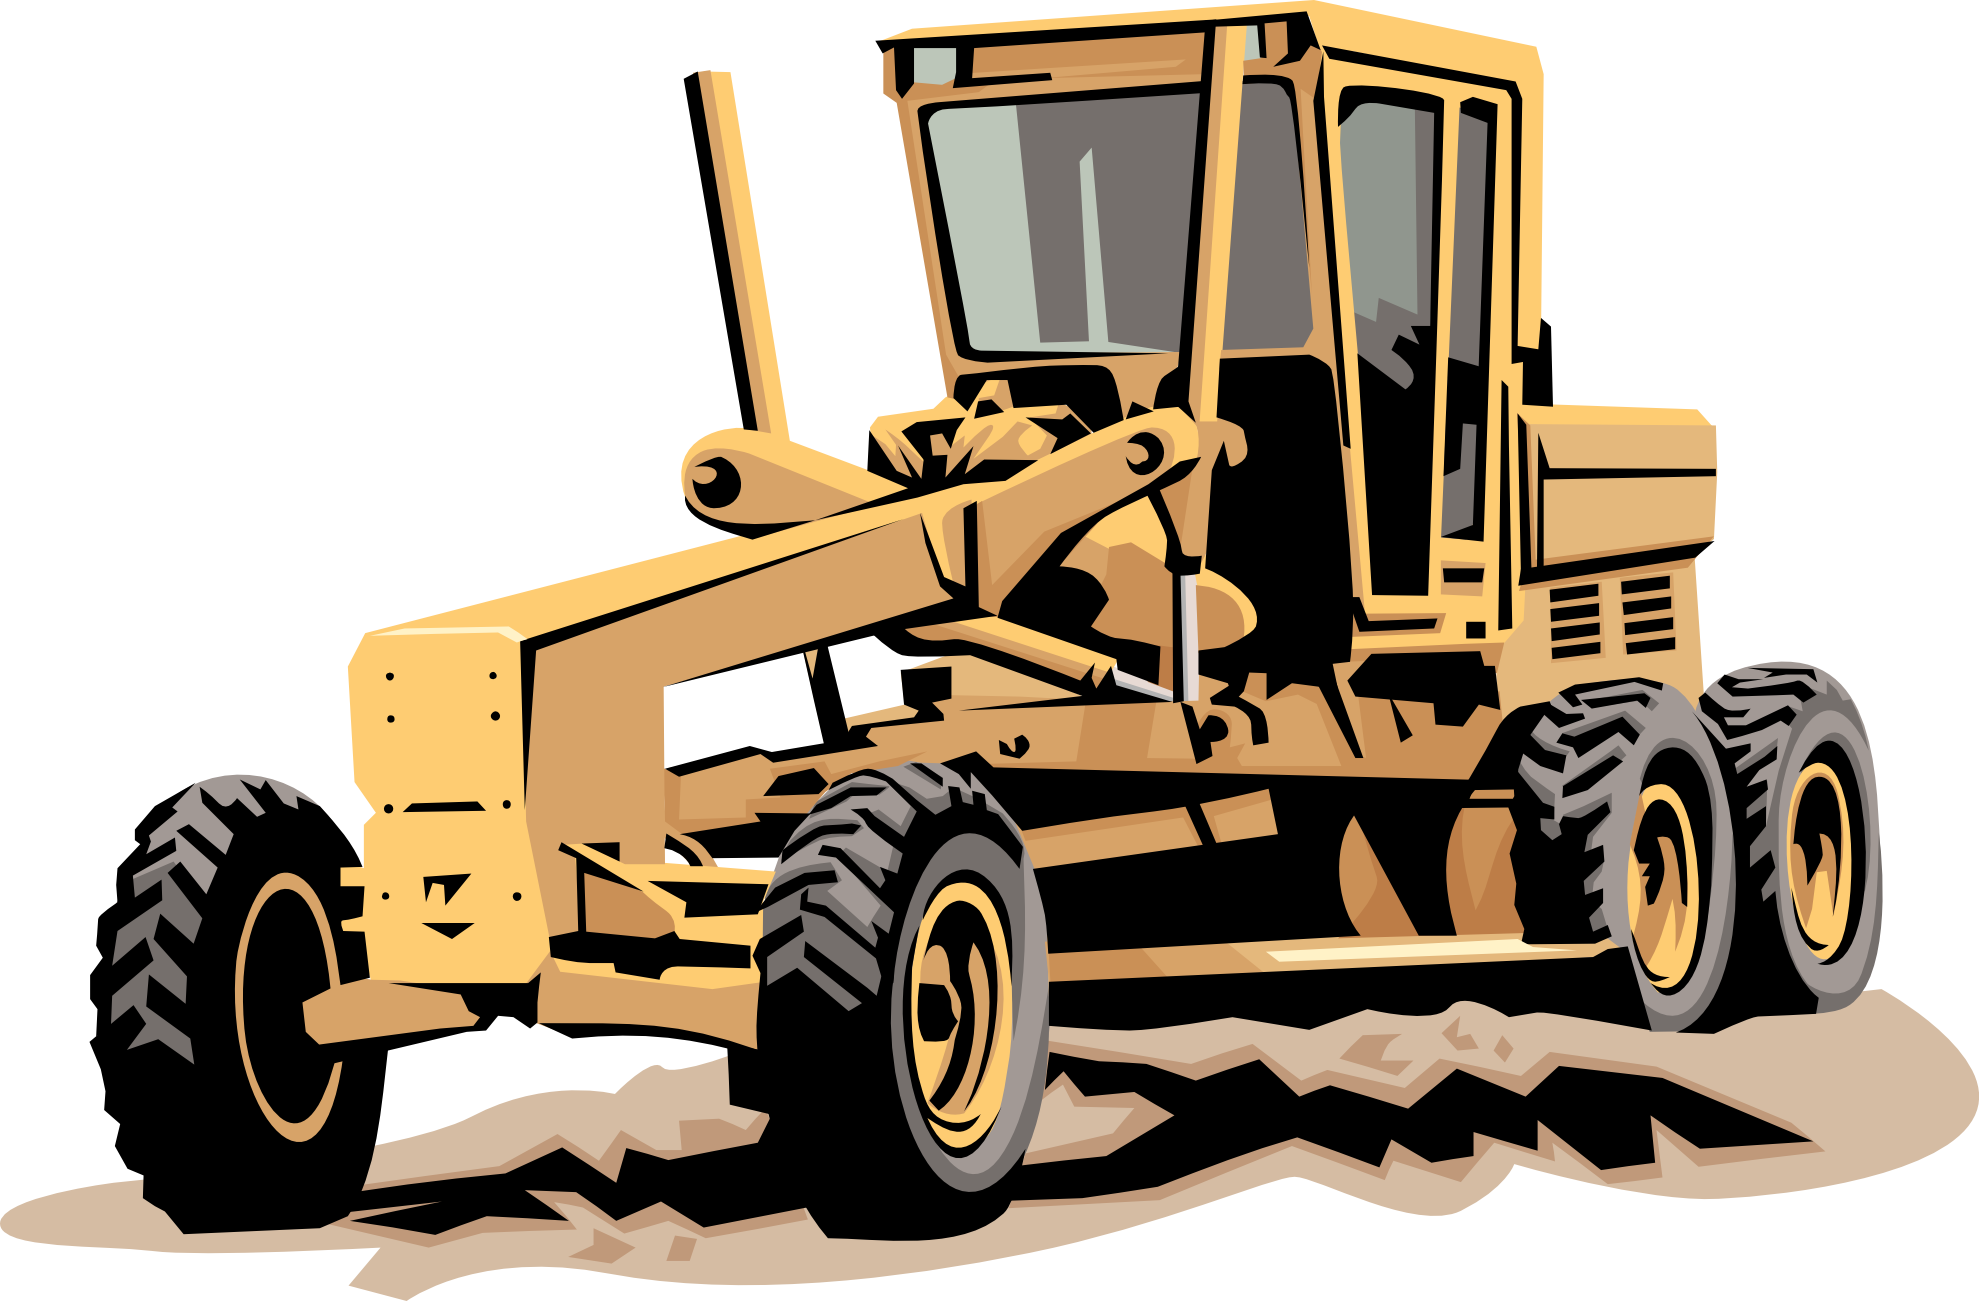 Road work machinery clipart clip art transparent Free Heavy Equipment Cliparts, Download Free Clip Art, Free ... clip art transparent